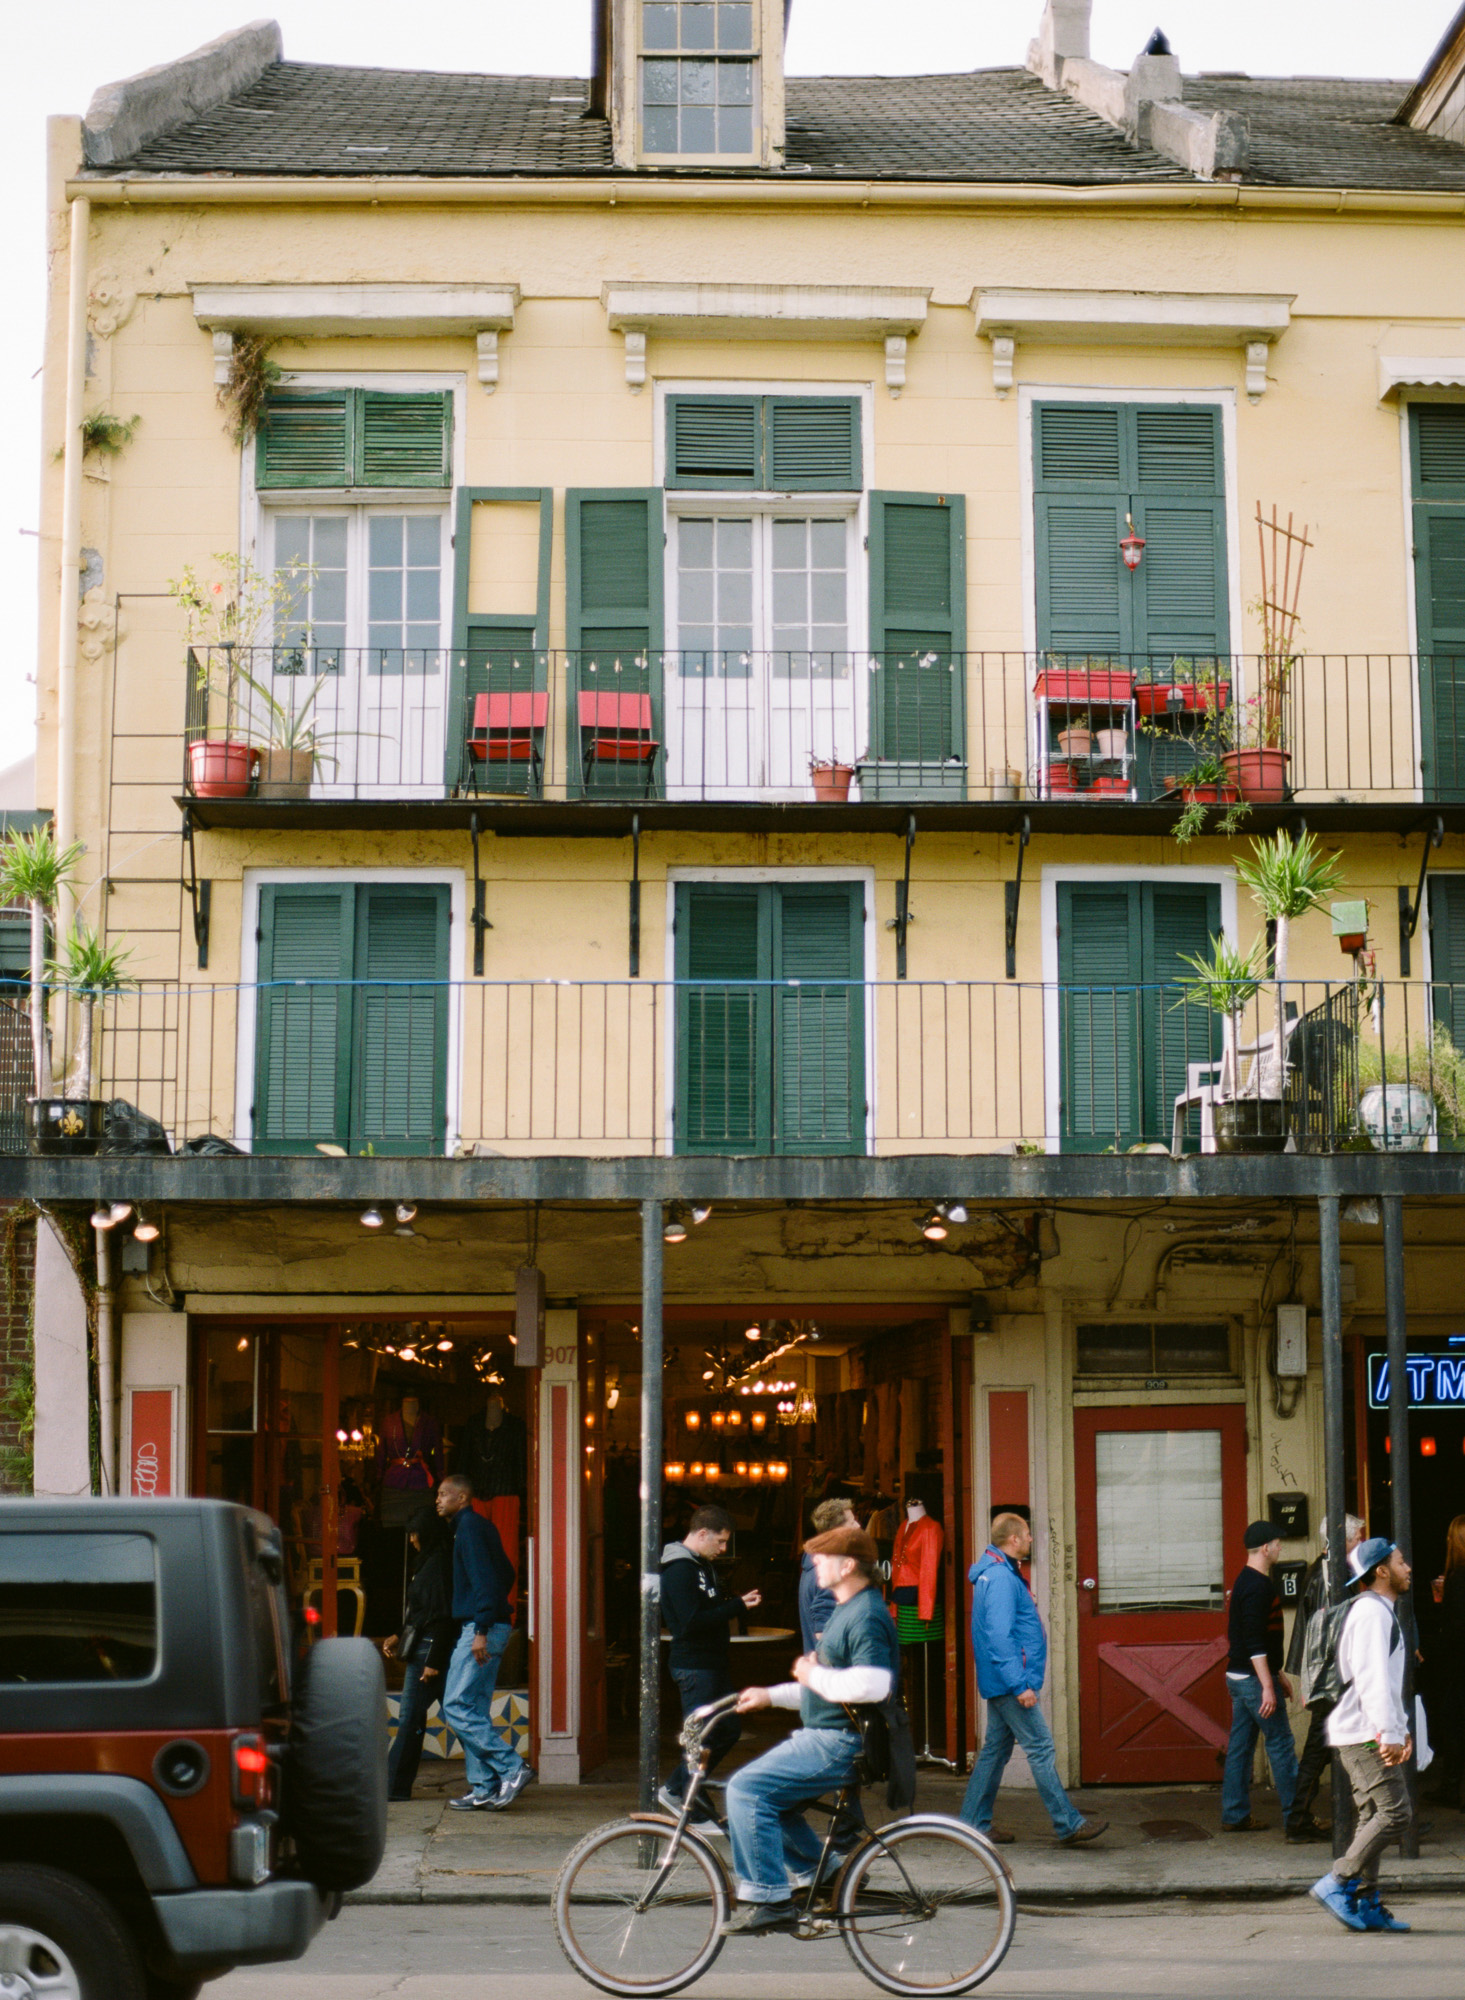 NEWORLEANS2013_©kristinmyoung_SquareLORes-21.jpg